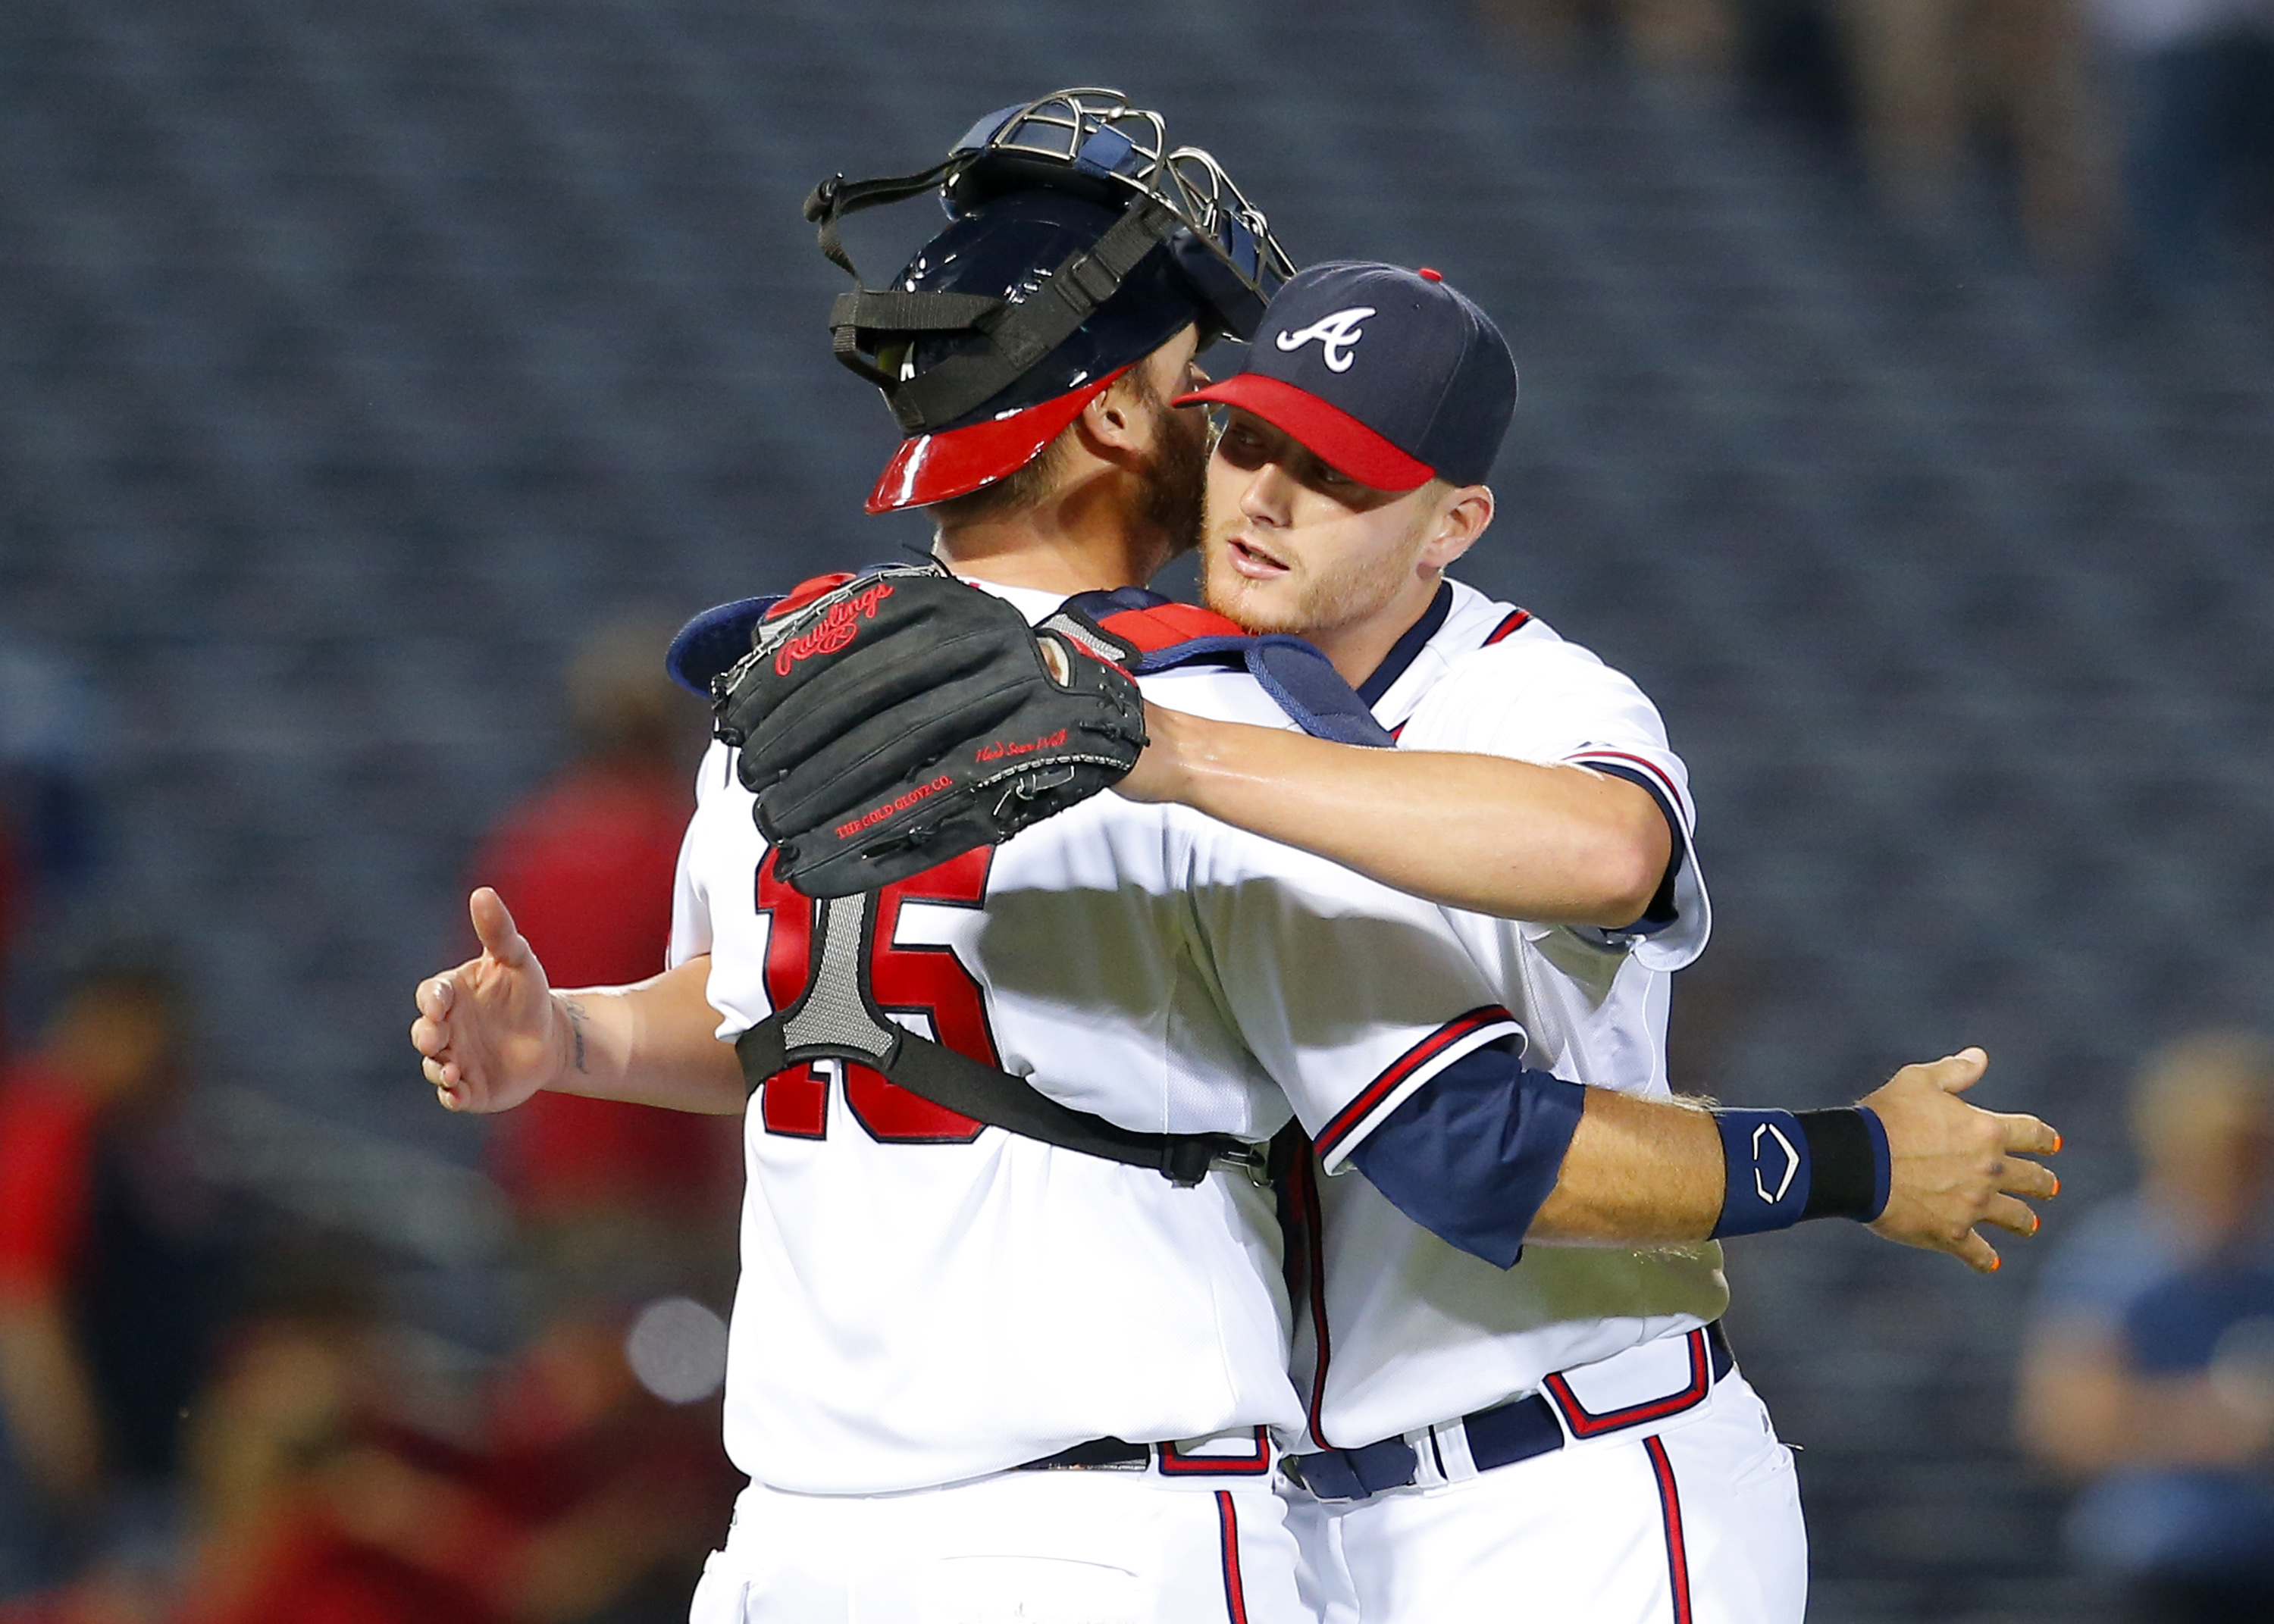 Atlanta Braves starting pitcher Shelby Miller, right, celebrates throwing a complete game with catcher A.J. Pierzynski (15) after a baseball game against the Philadelphia Phillies, Tuesday, May 5, 2015, in Atlanta. The Braves won the game 9-0. (AP Photo/T